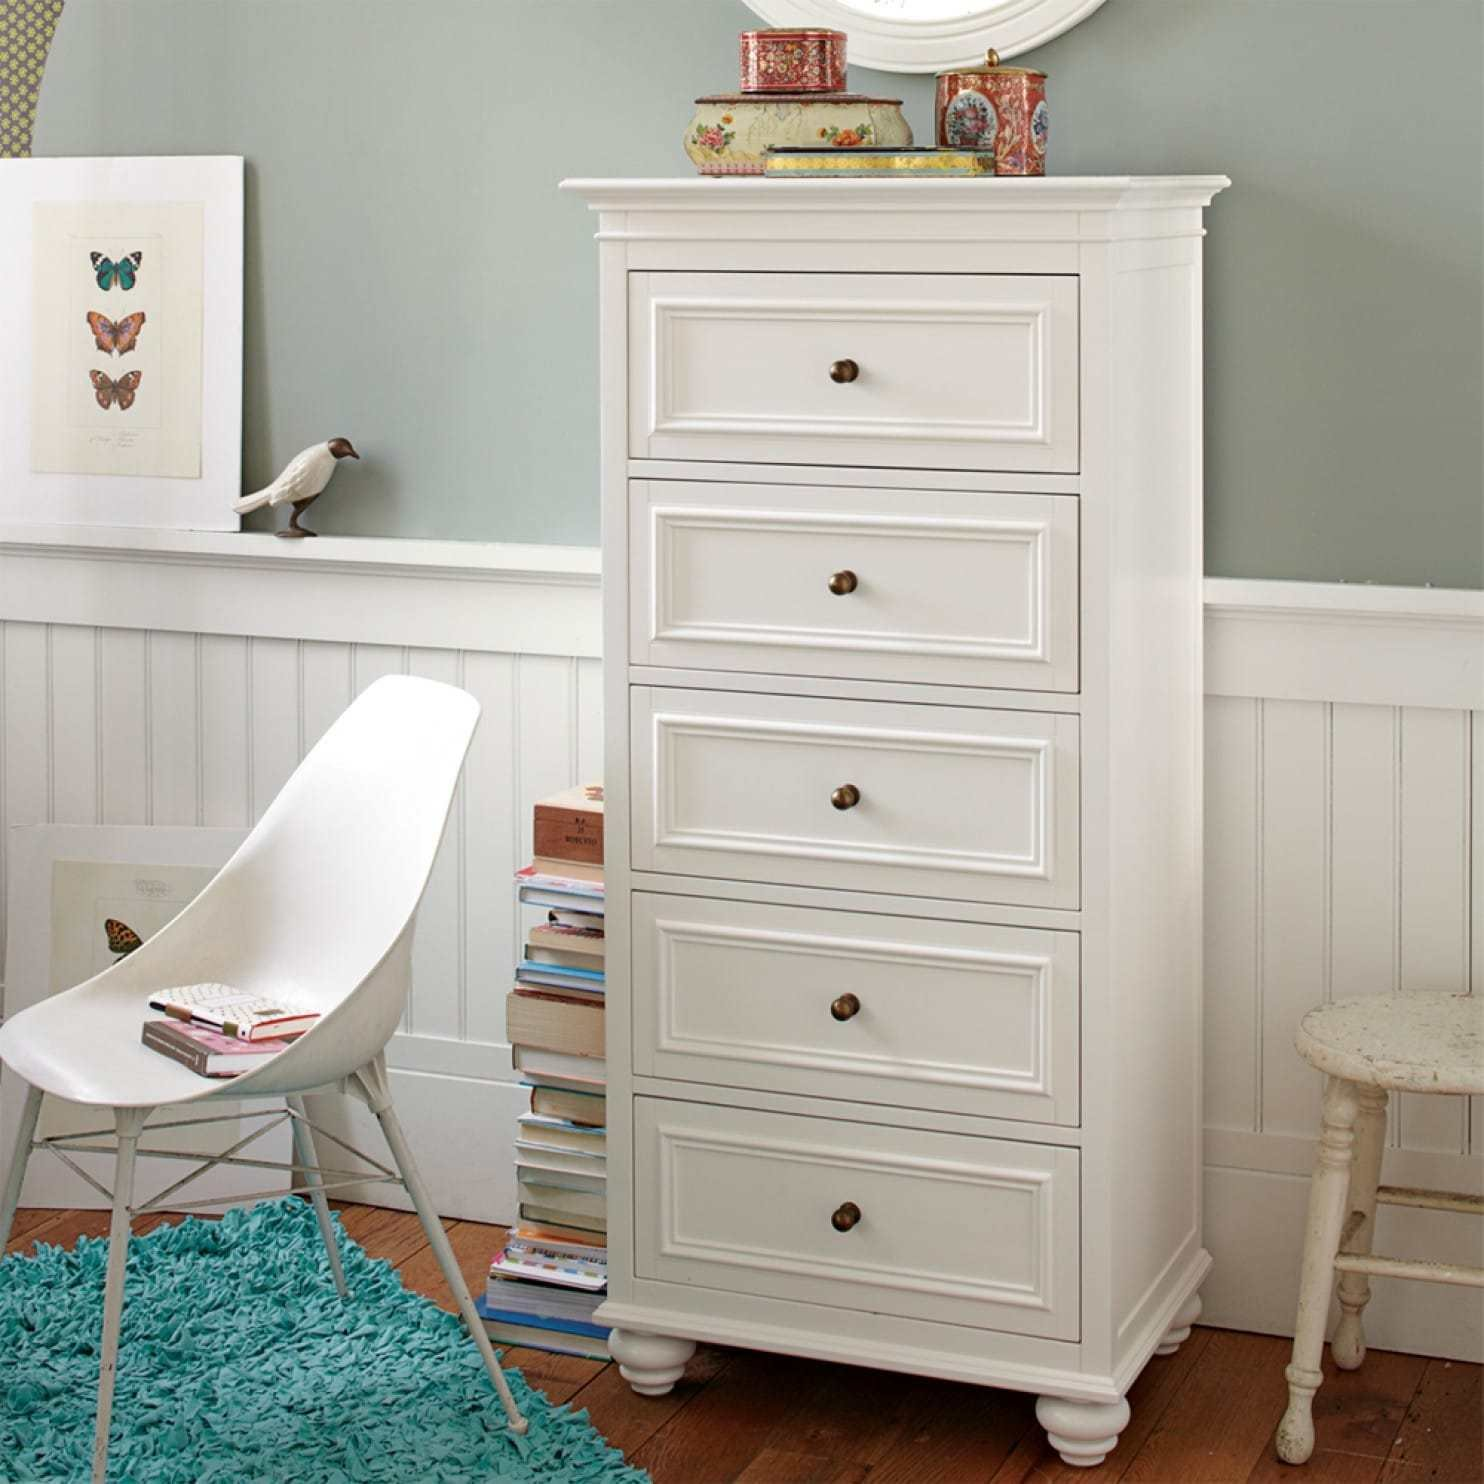 Best Creative Dresser Options For Small Spaces The Washington Post With Pictures